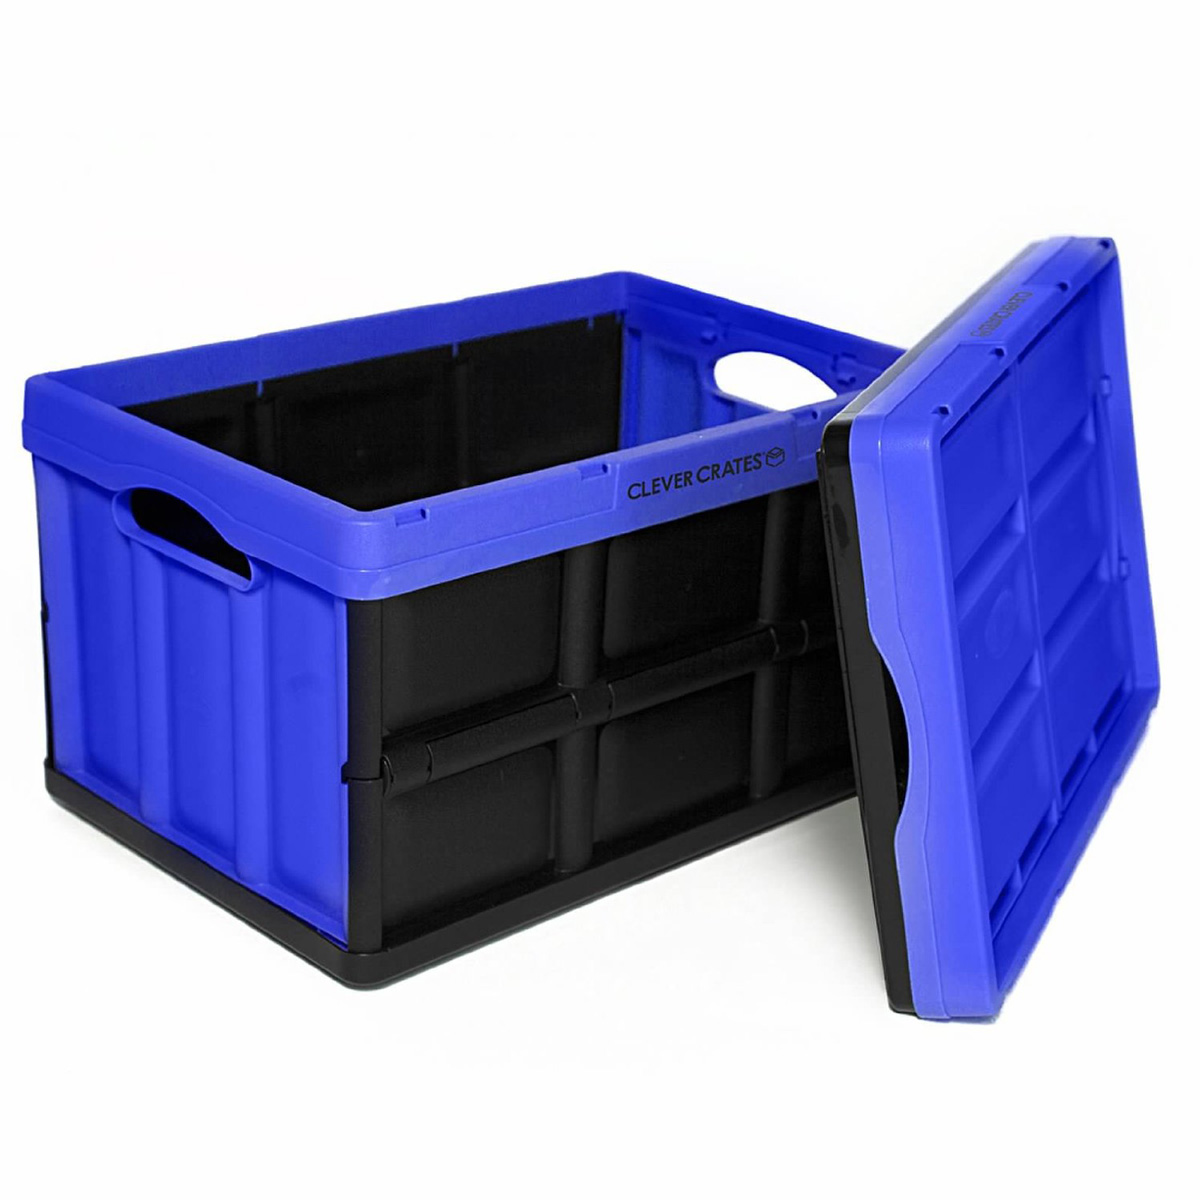 Clever Crates - Collapsible All-Purpose Utility Crates - The Green Head